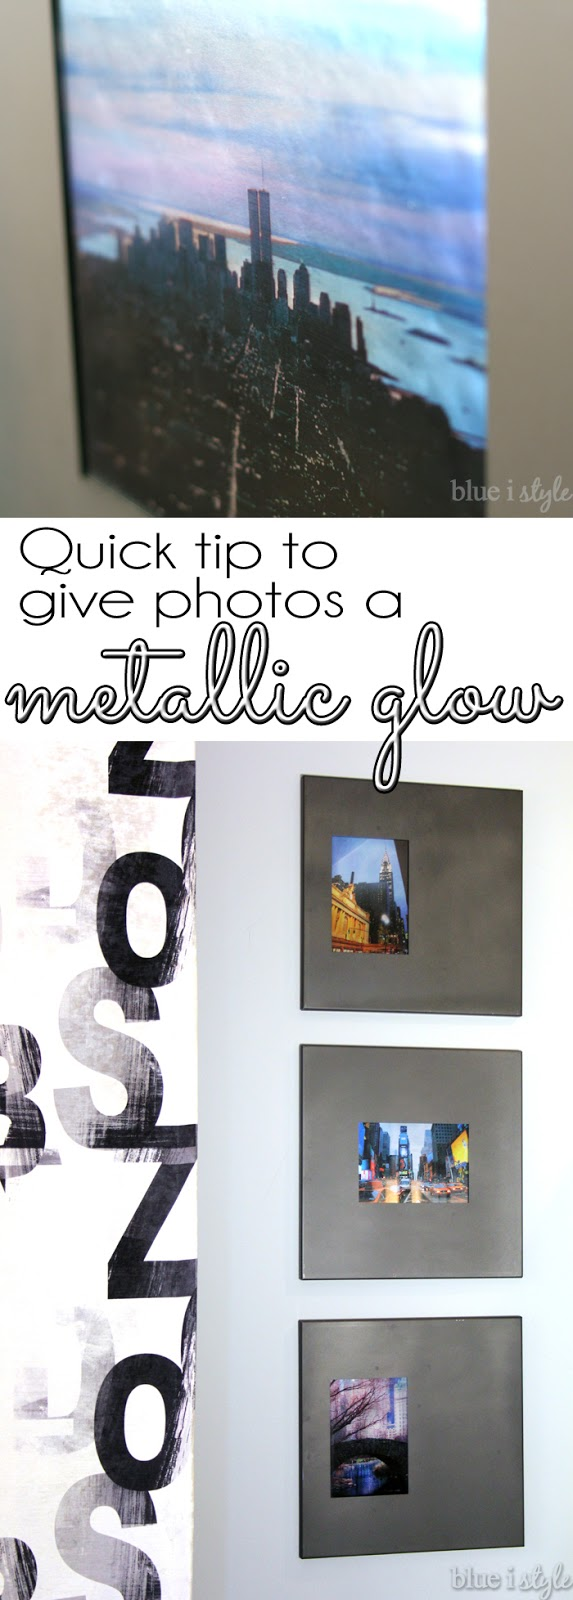 how to give font glow photoshop